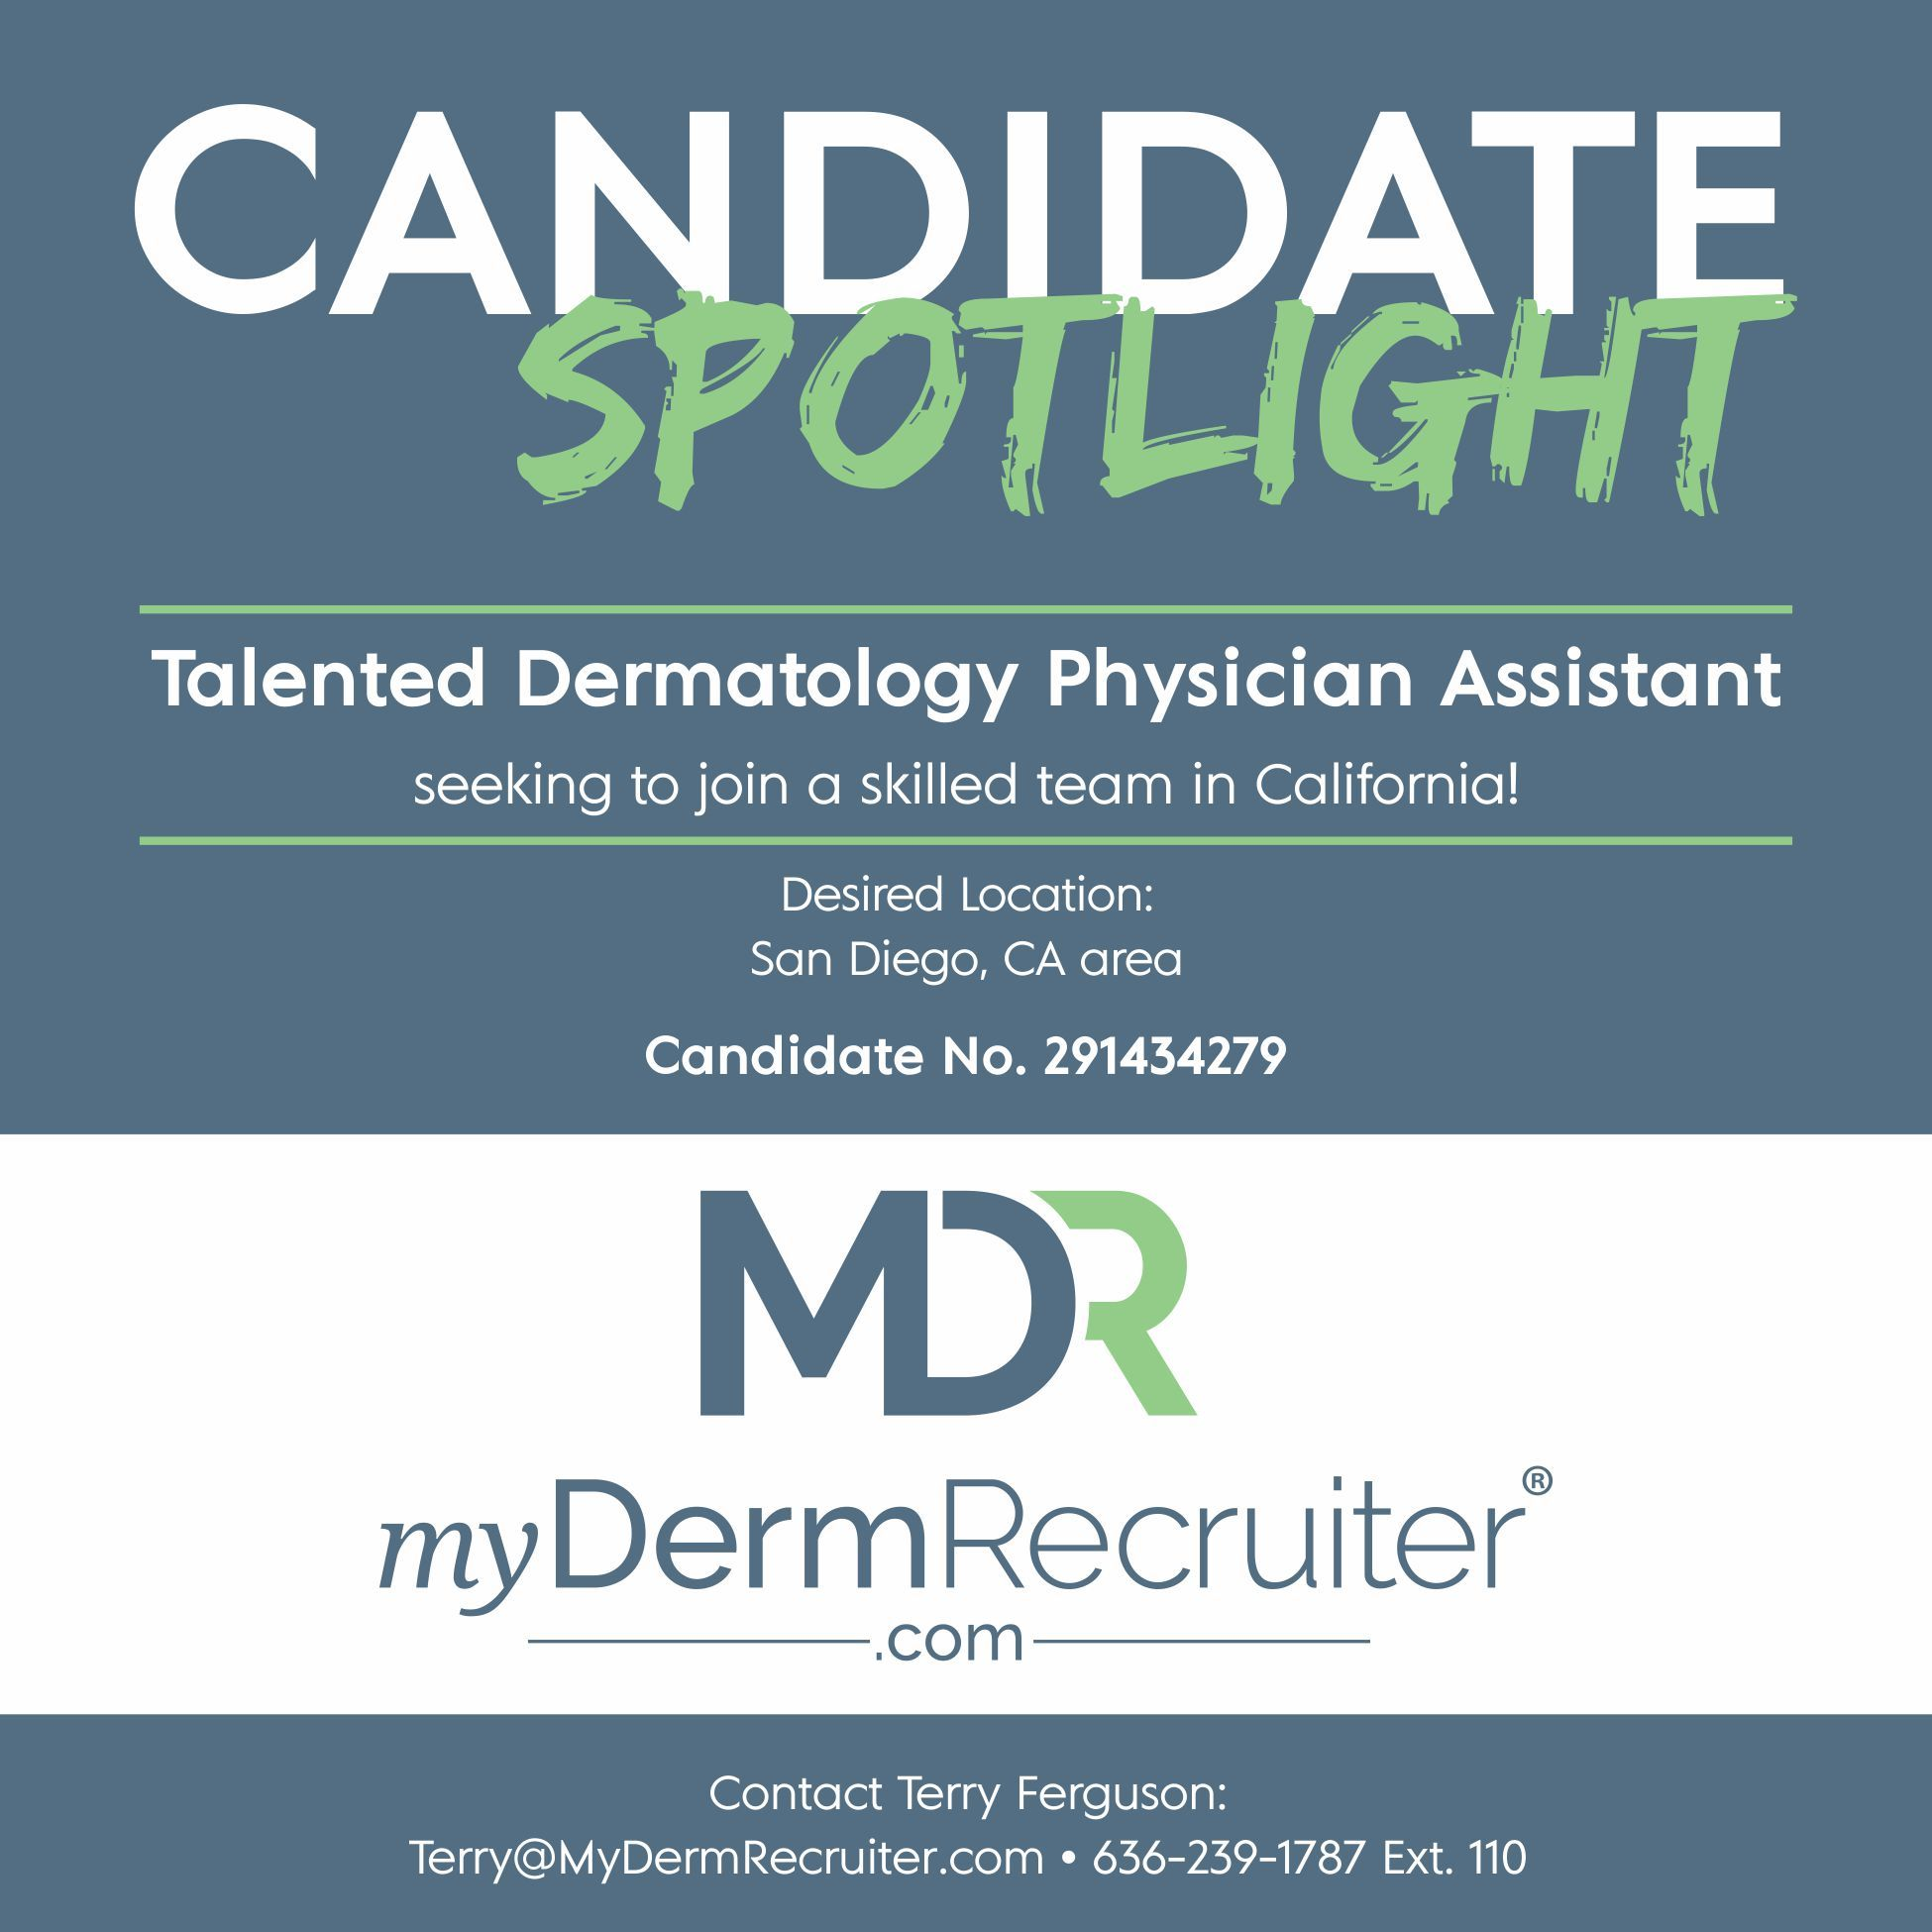 SKILLED Dermatology Physician Assistant seeking a career